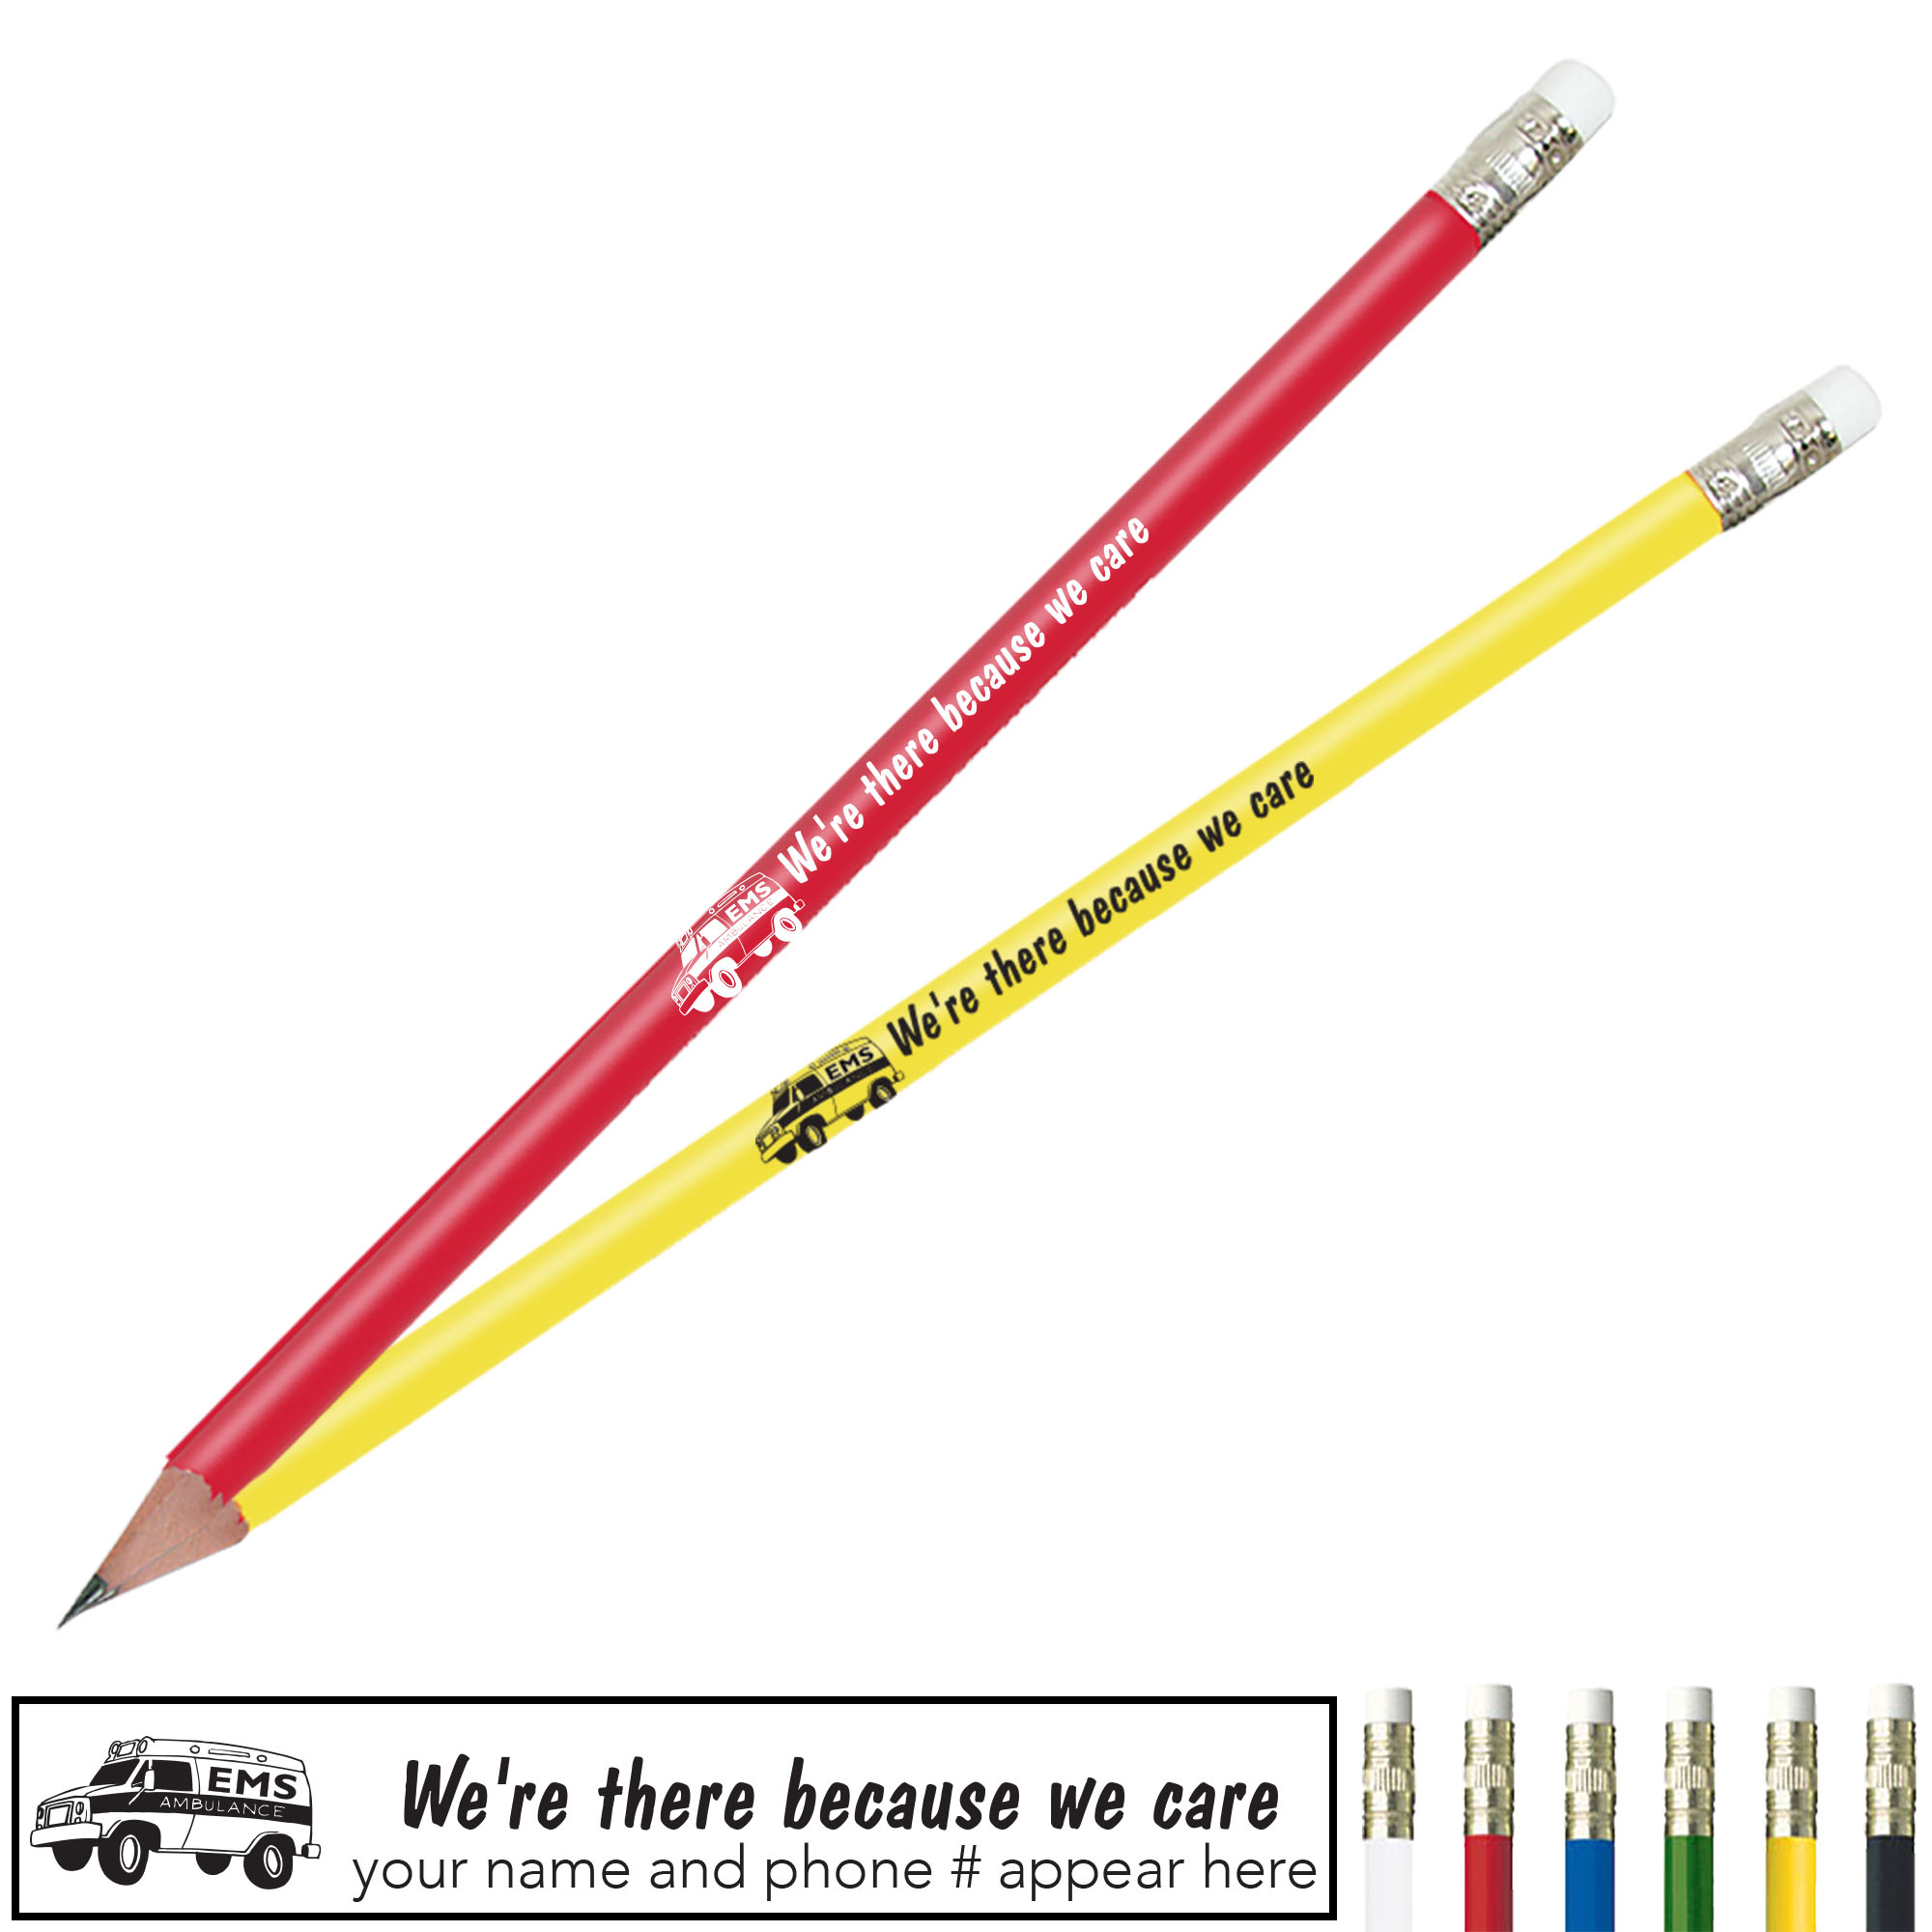 We're There Because We Care Pricebuster Pencil